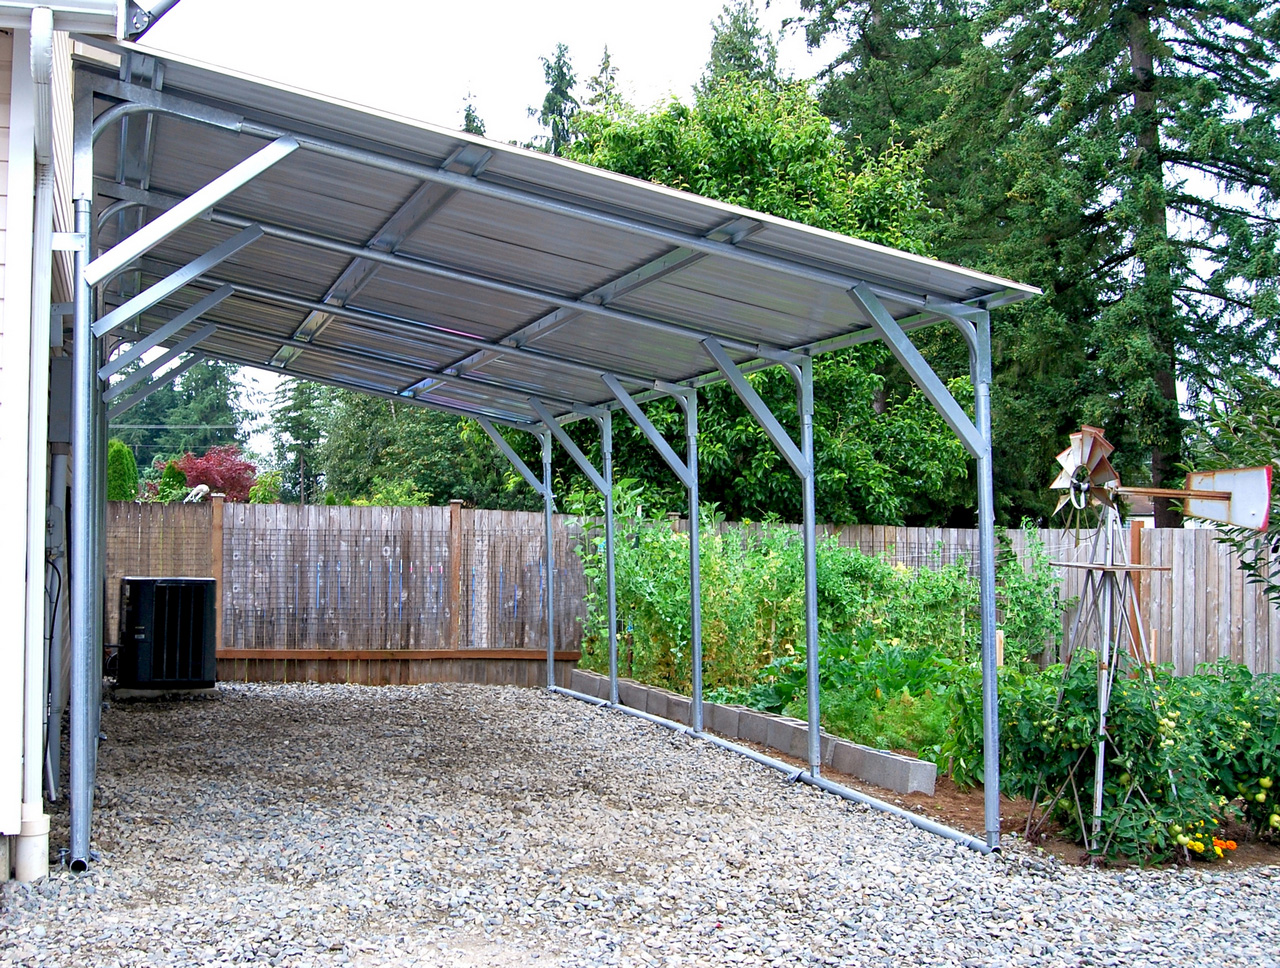 Building a Carport-how to build a carport-portable carport